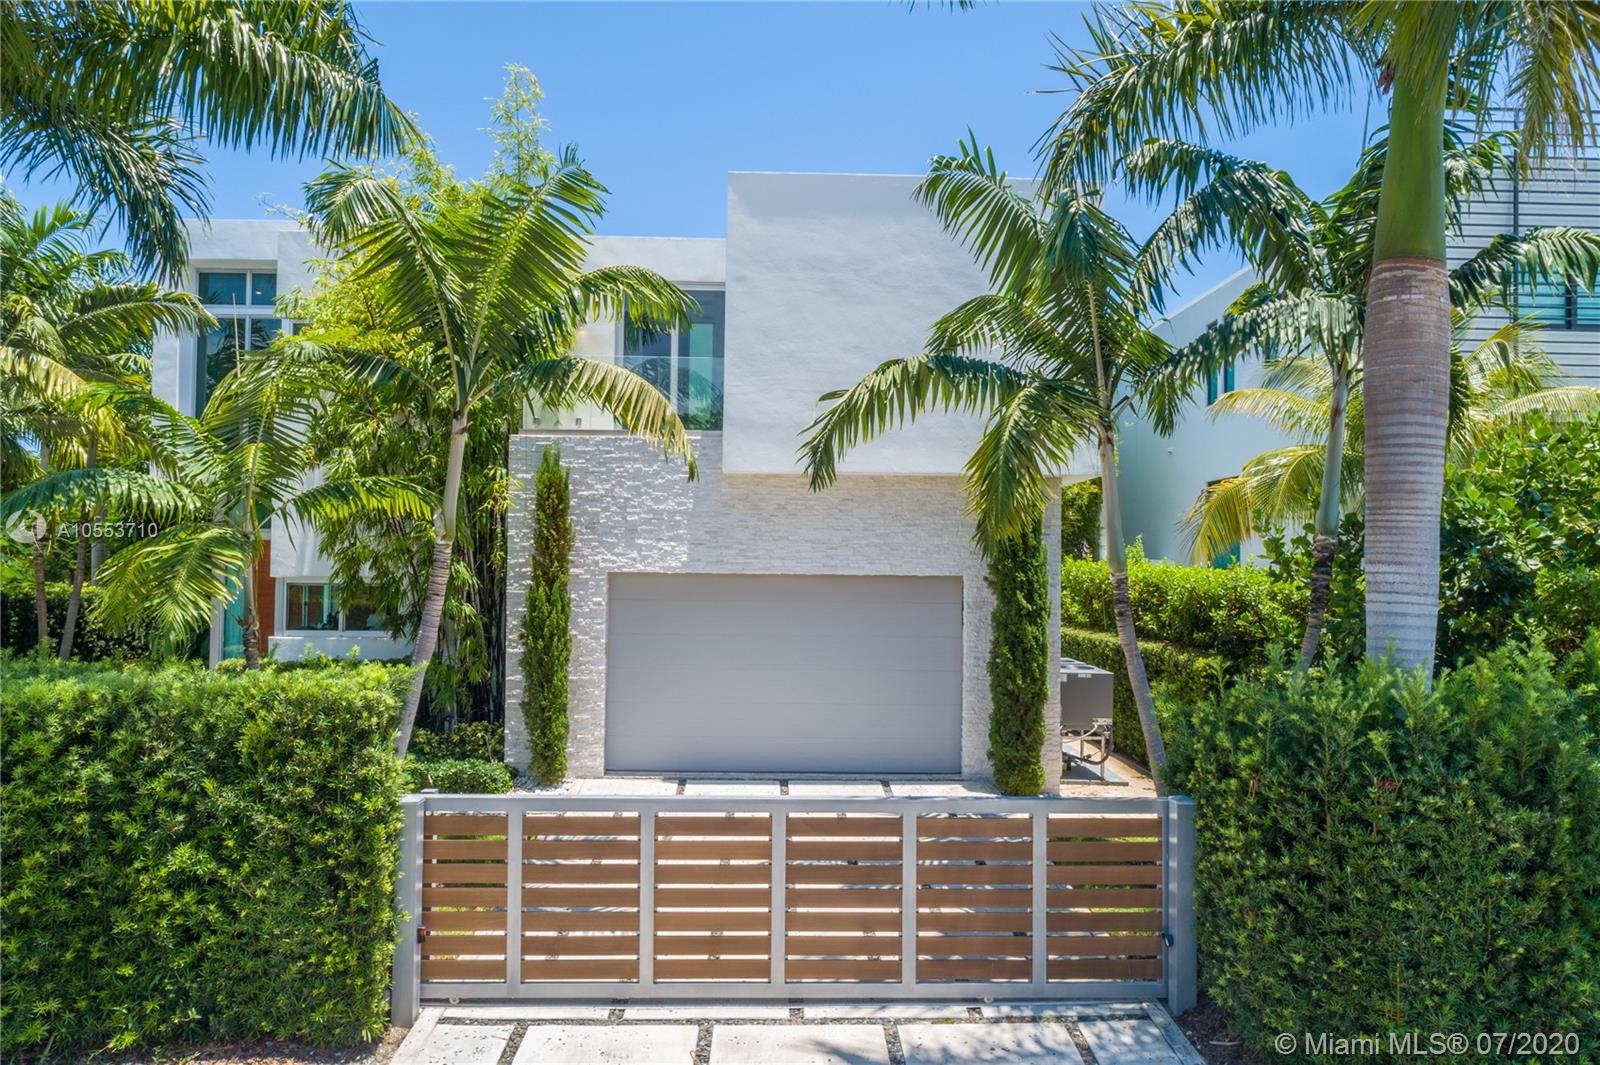 Lushly landscaped and strikingly modern two-level turnkey residence located in Hibiscus Island on a prime 9,500 sf corner lot. Combining functionality and design, it has an adj. area of 4.090 sf., 5 beds and 5.5 baths with glass walls that overlook the resort-inspired backyard. This tropical oasis features an inviting pool, fire pit, grill and lounging areas. Upstairs is the clean-lined master bedroom with 2 walk-in closets and spa-like bath, two guest bedrooms and a bedroom converted into a fitness room. Highlights include an open kitchen with upright wine cooler, office, two-car garage, rooftop terrace and more.